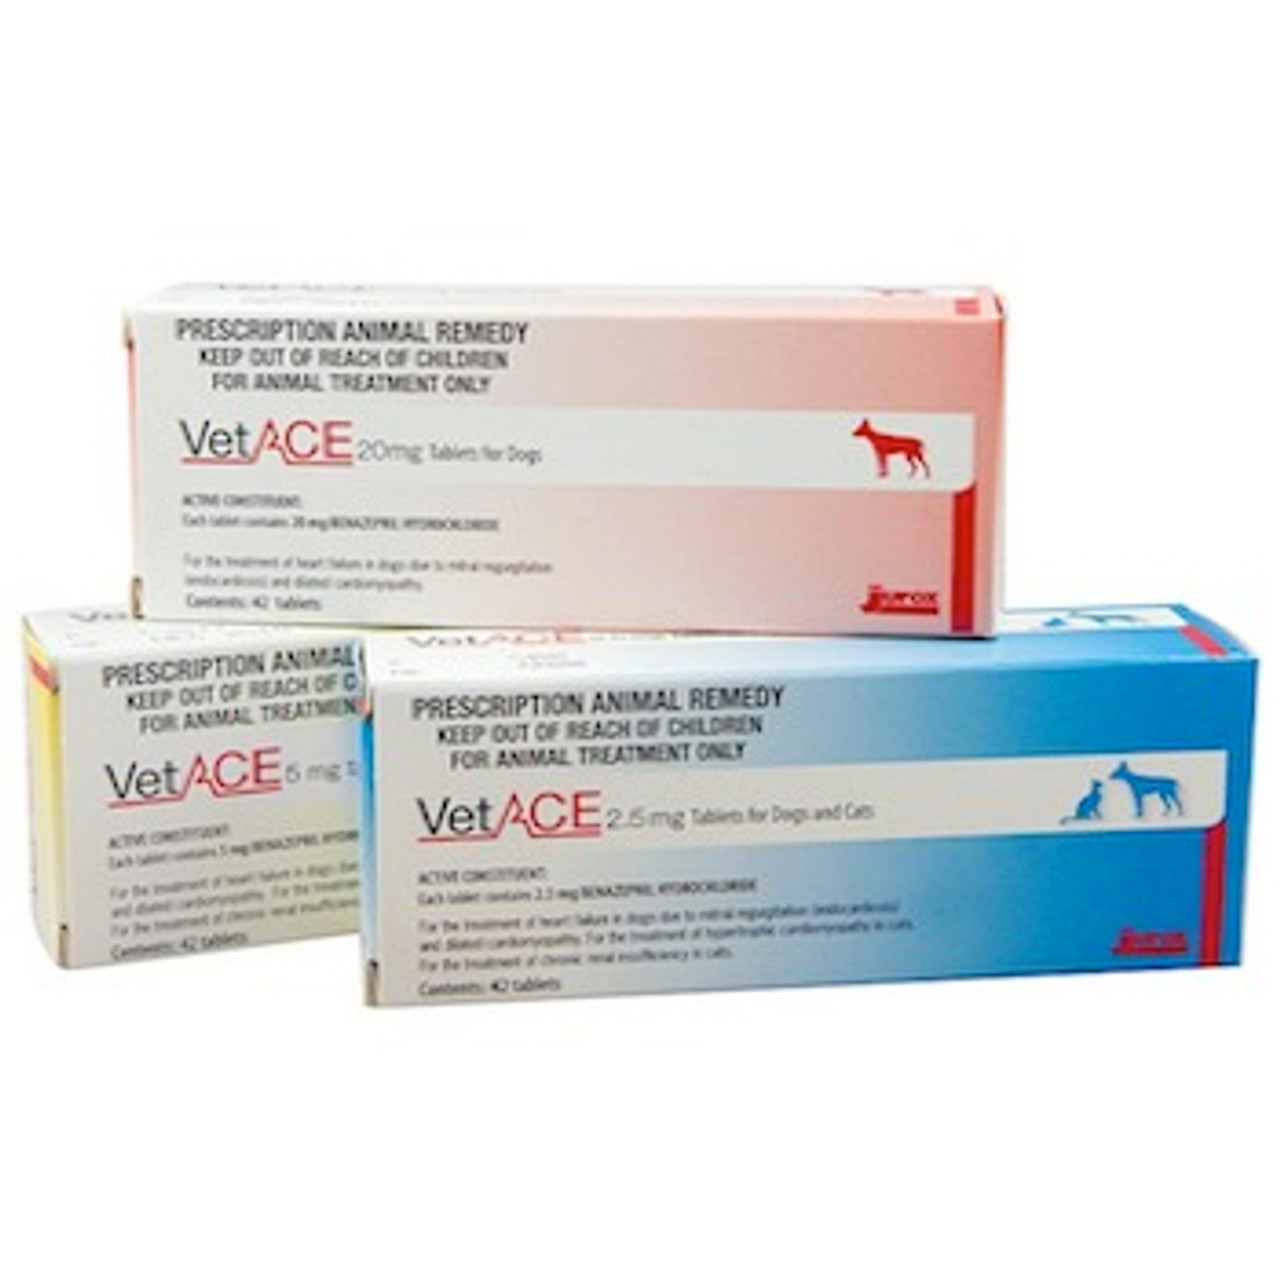 VetACE 2 5mg Tablets For Dogs & Cats - Pack of 42